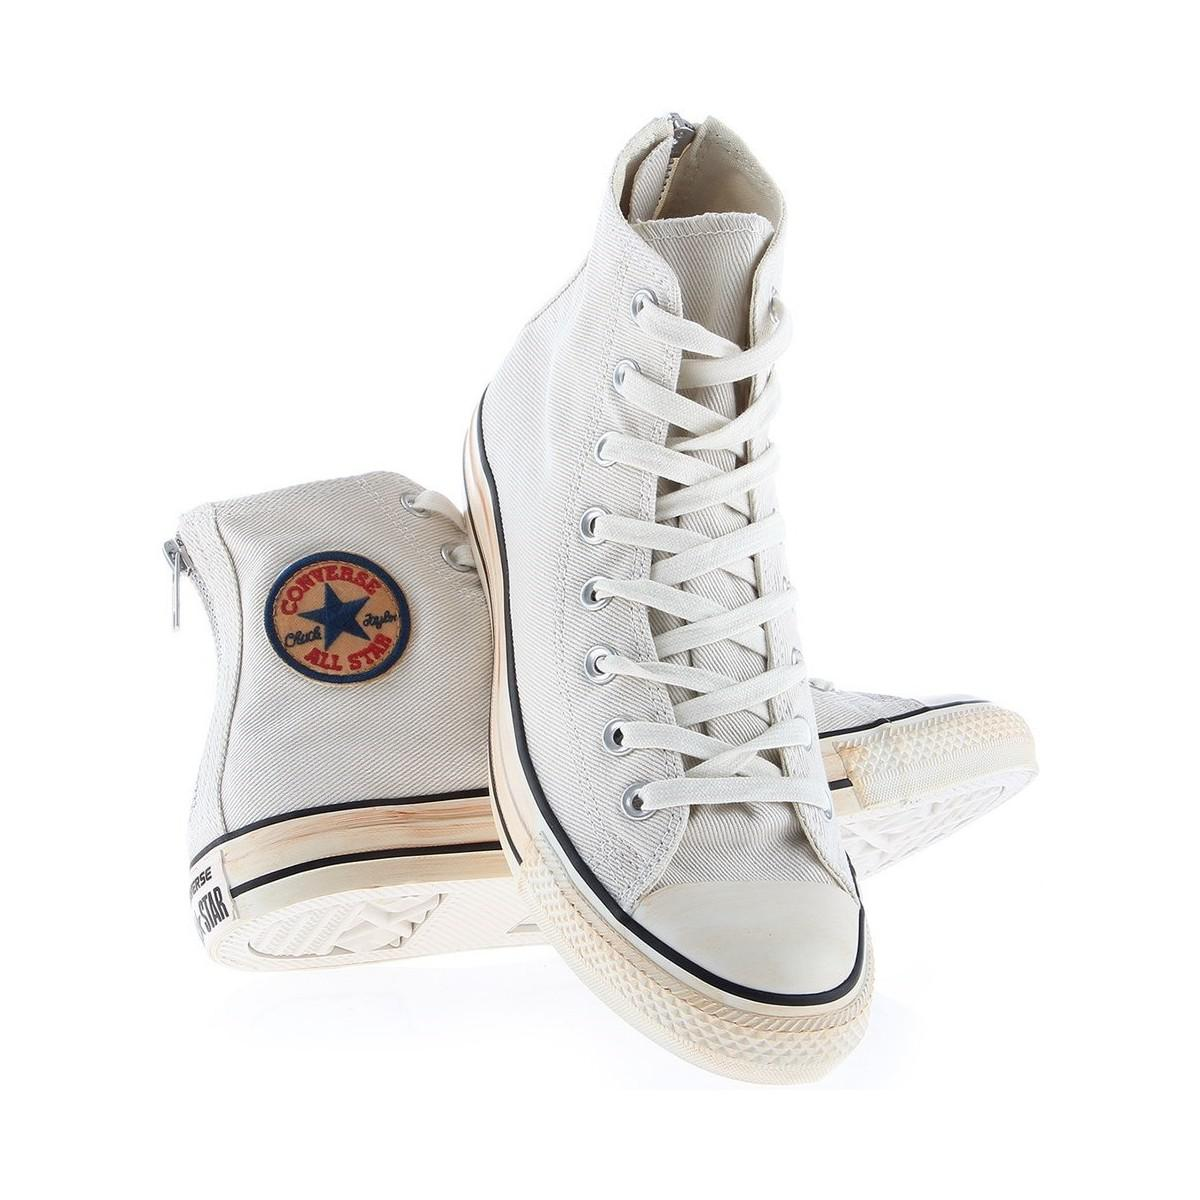 4491c60bfa01 Converse Chuck Taylor All Star Back Zip Turtledove Men s Shoes (high ...